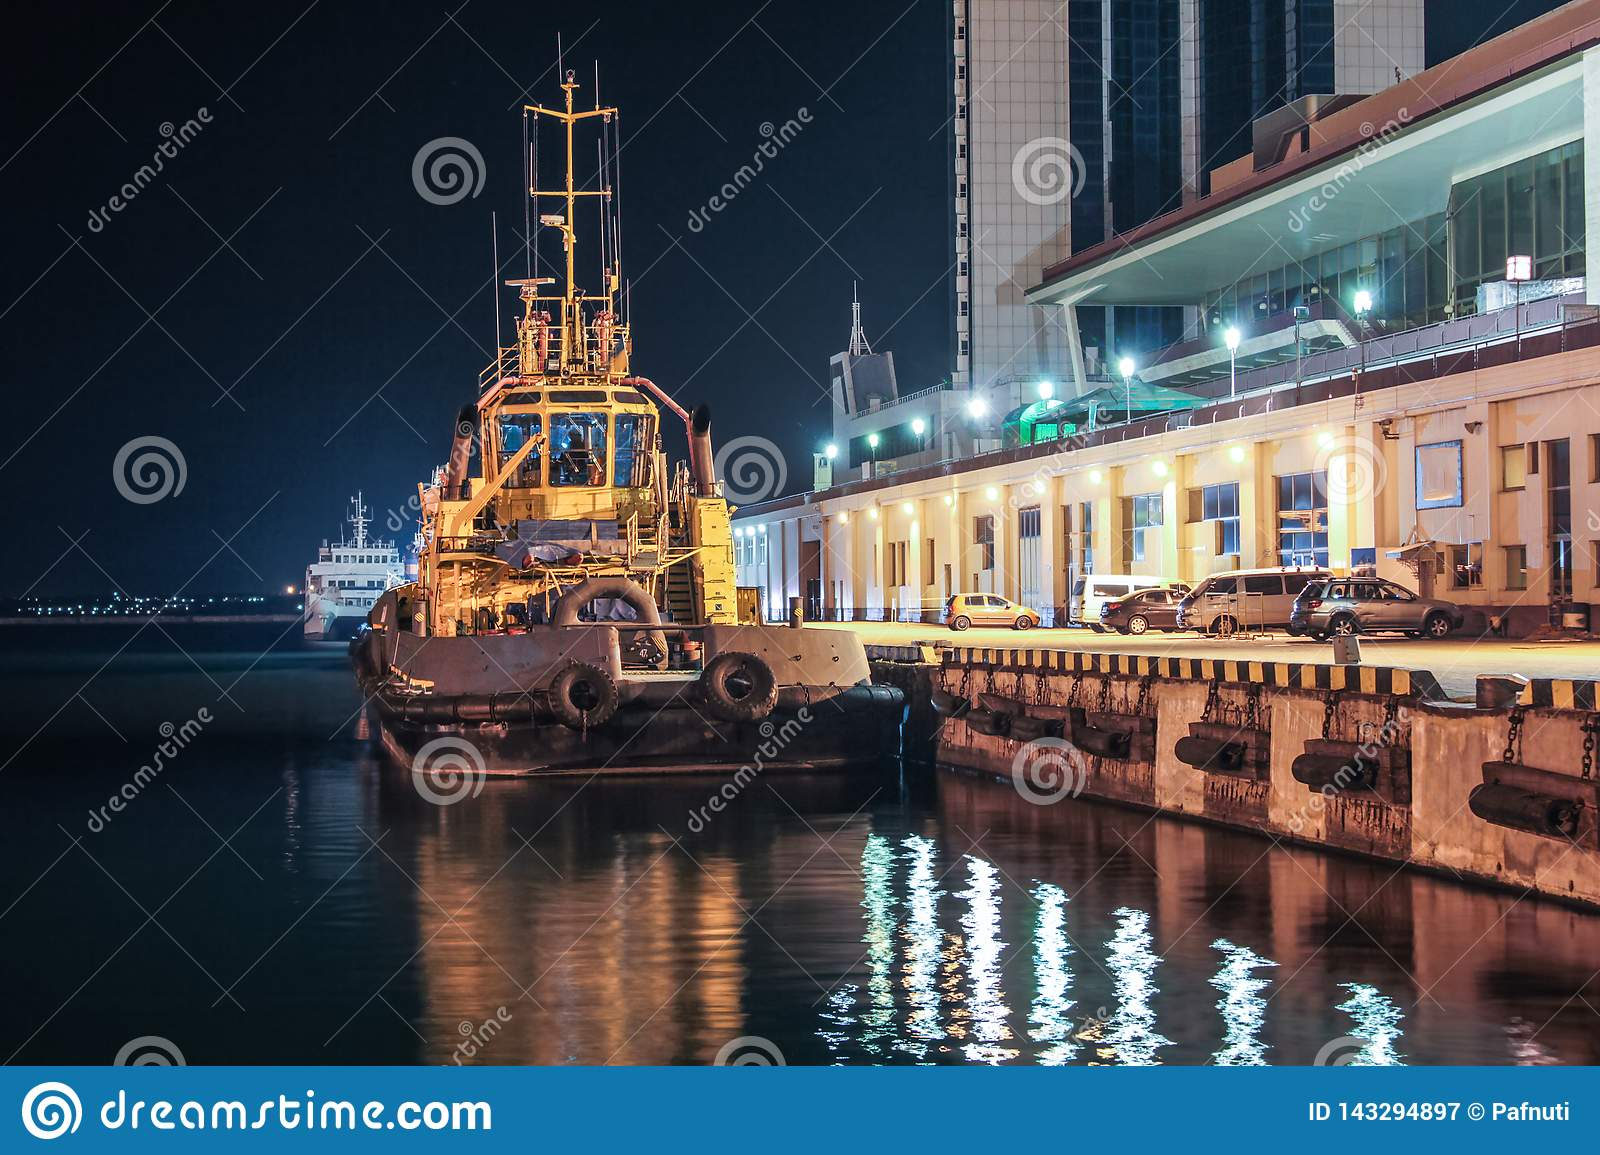 Night view of the tugboat in the cargo port